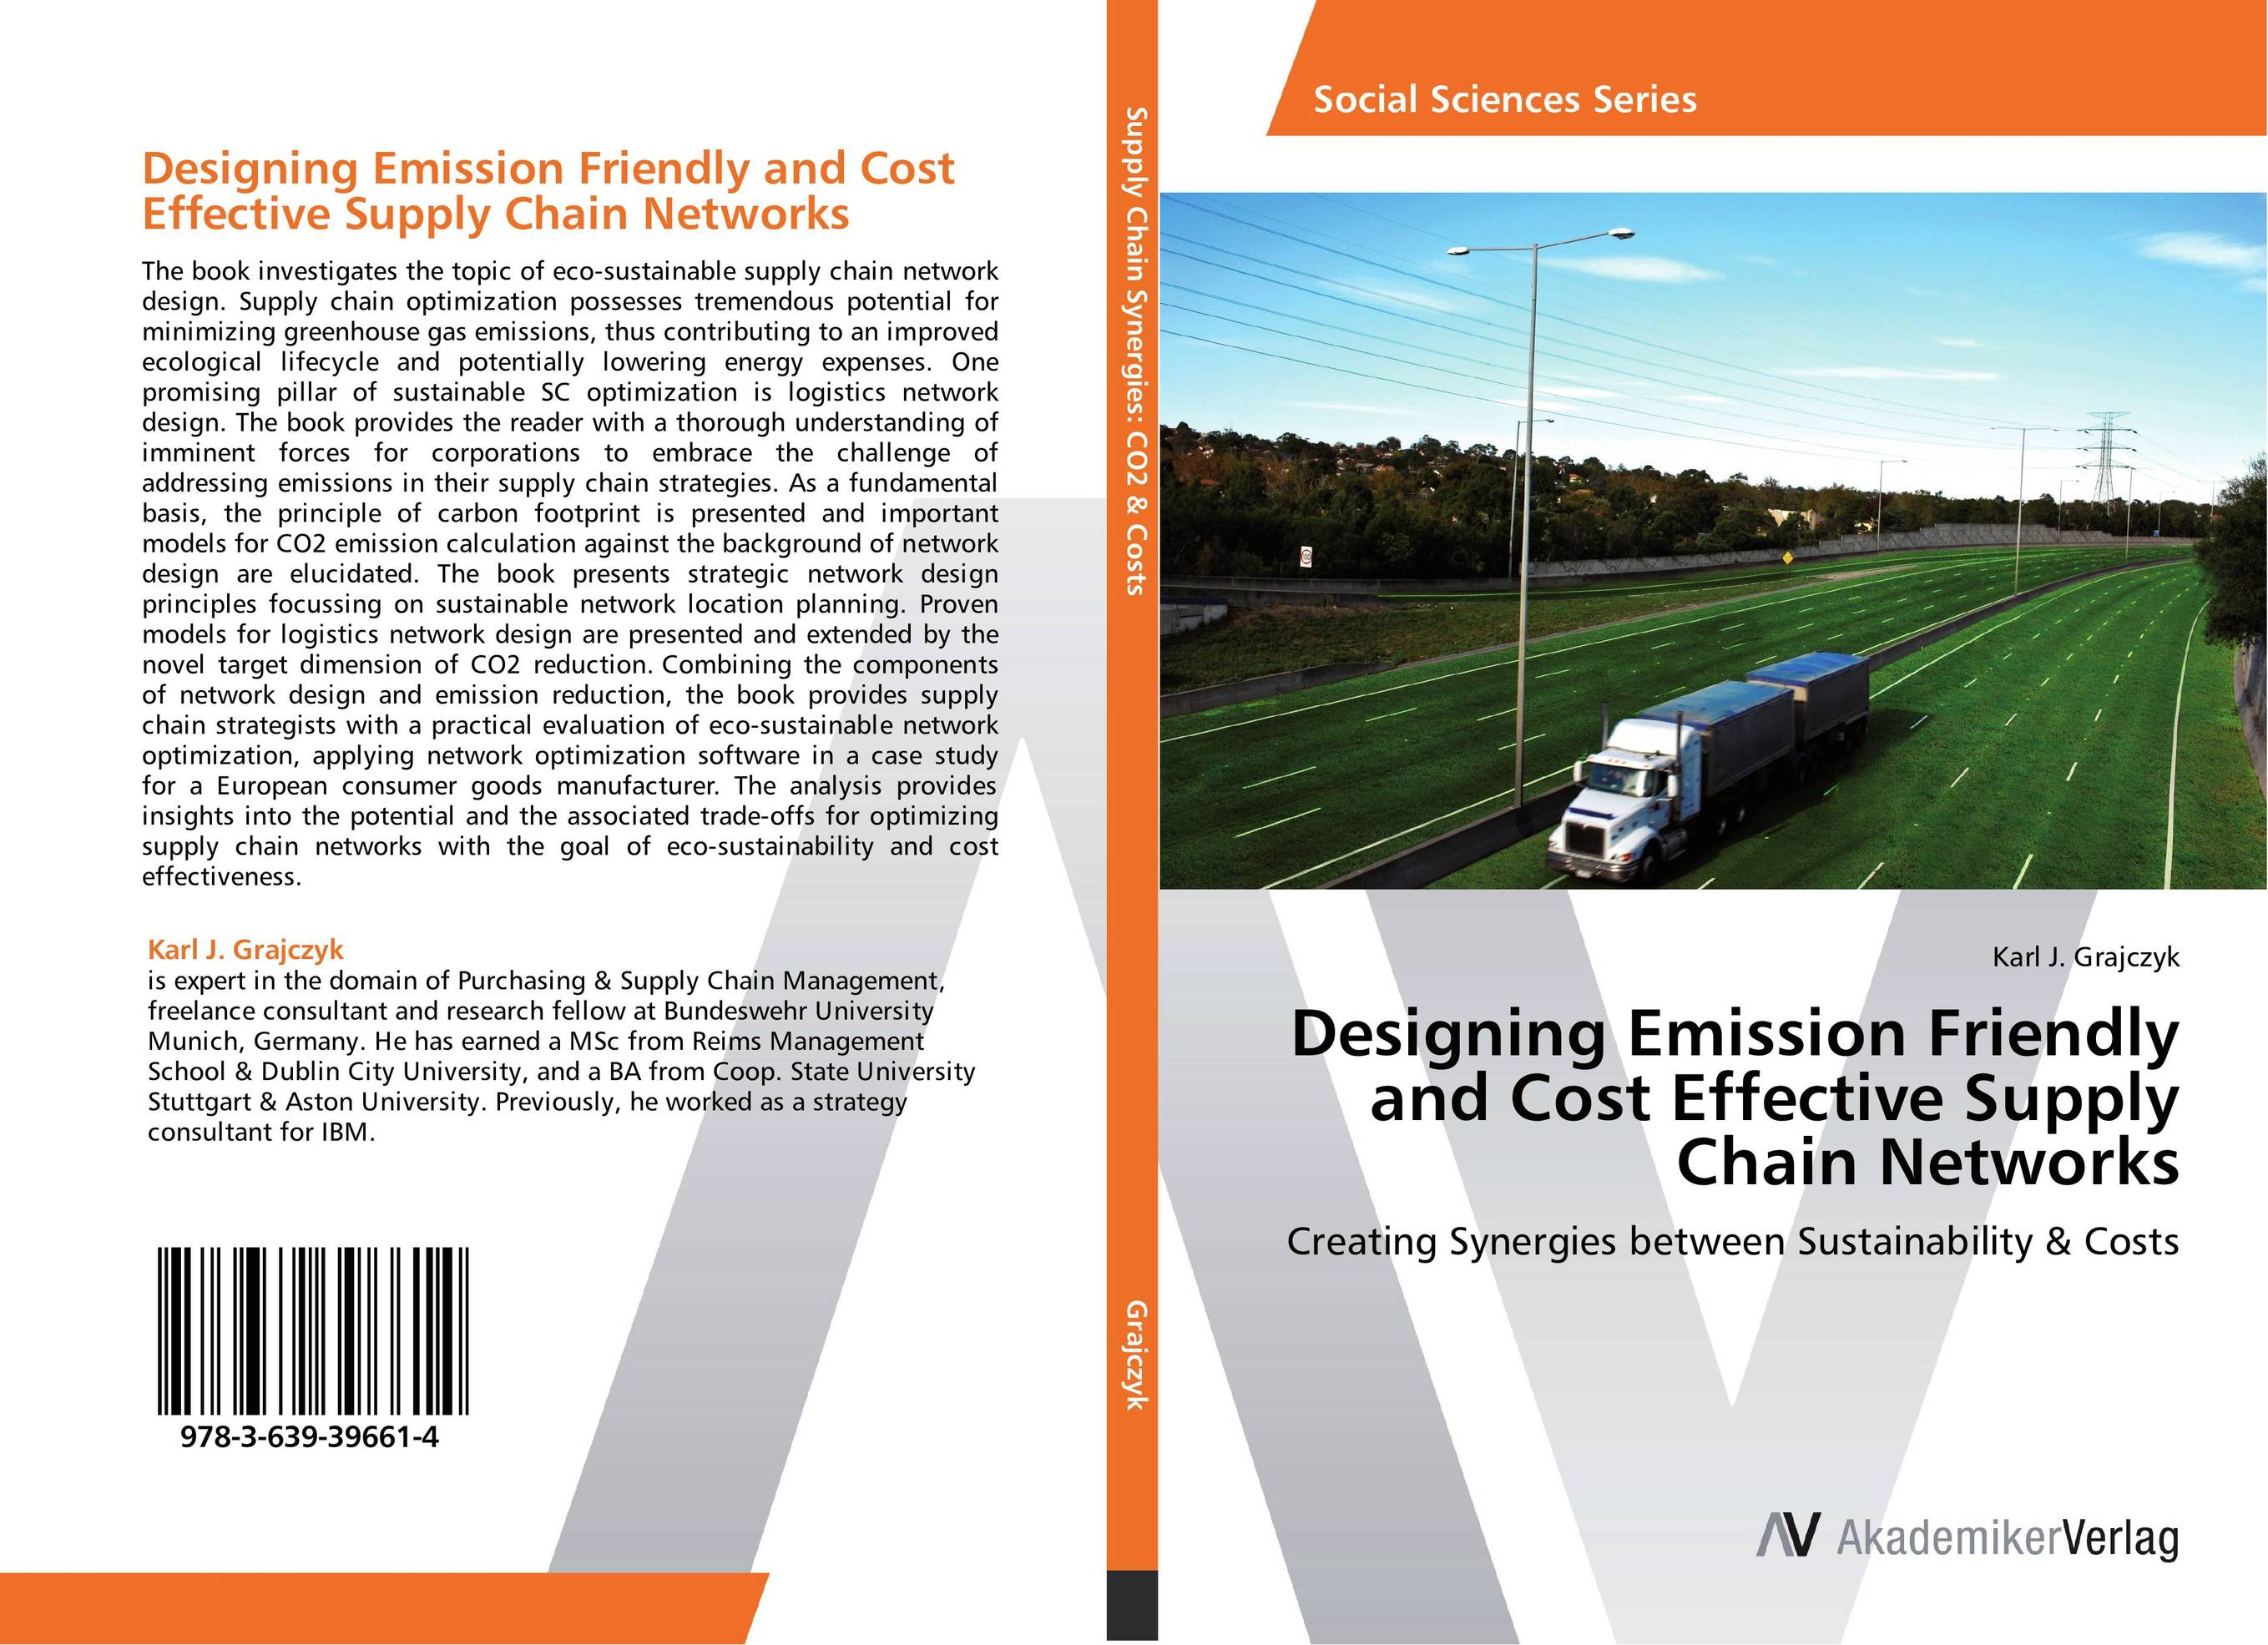 Designing Emission Friendly and Cost Effective Supply Chain Networks robert davis a demand driven inventory optimization and replenishment creating a more efficient supply chain